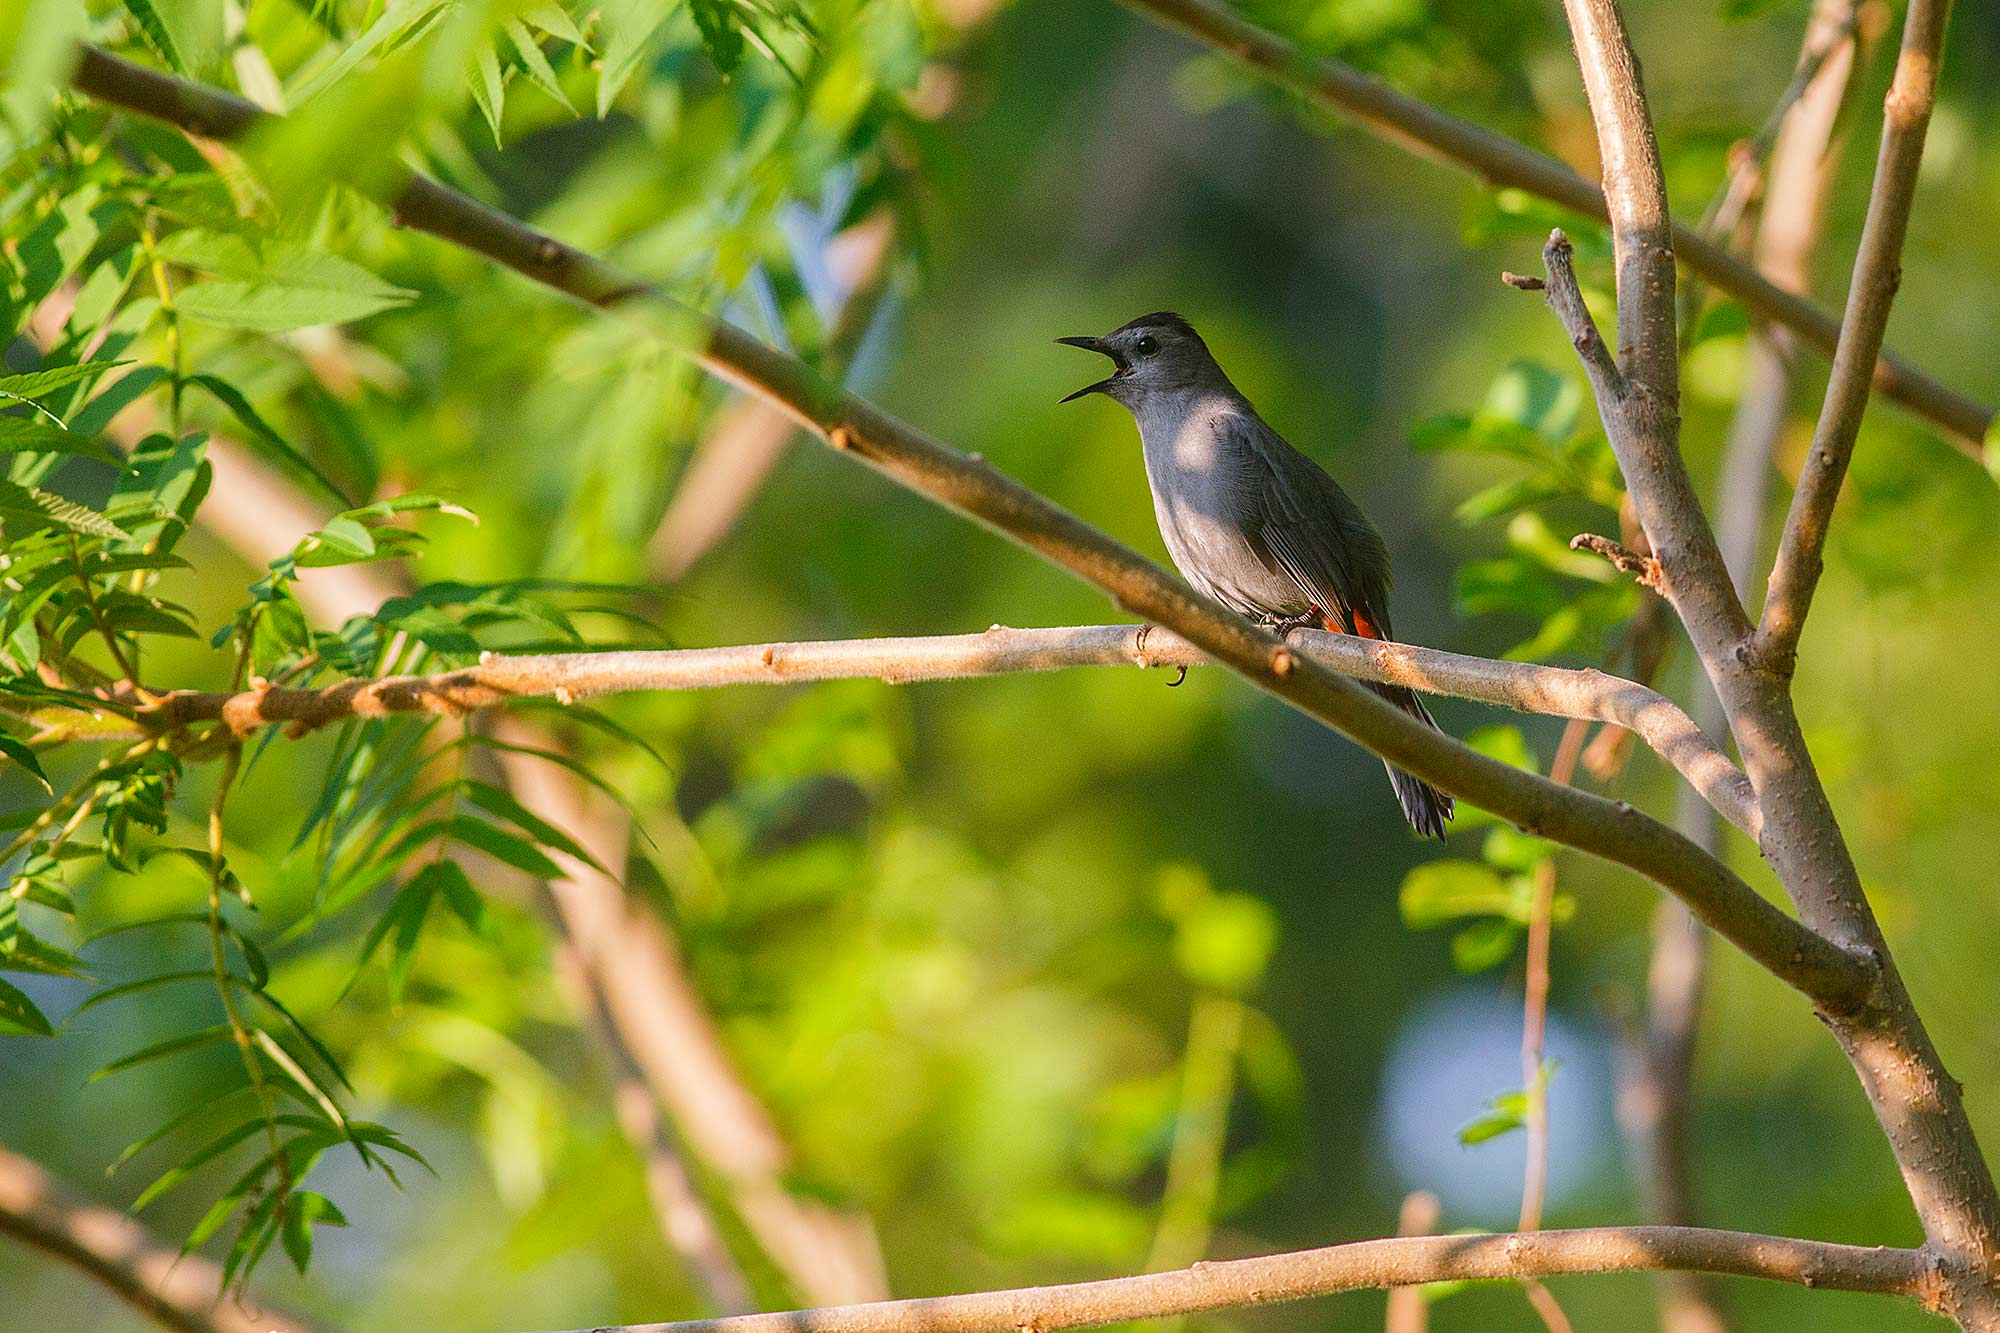 Grey Catbird, Avon, CT - 5/19/15